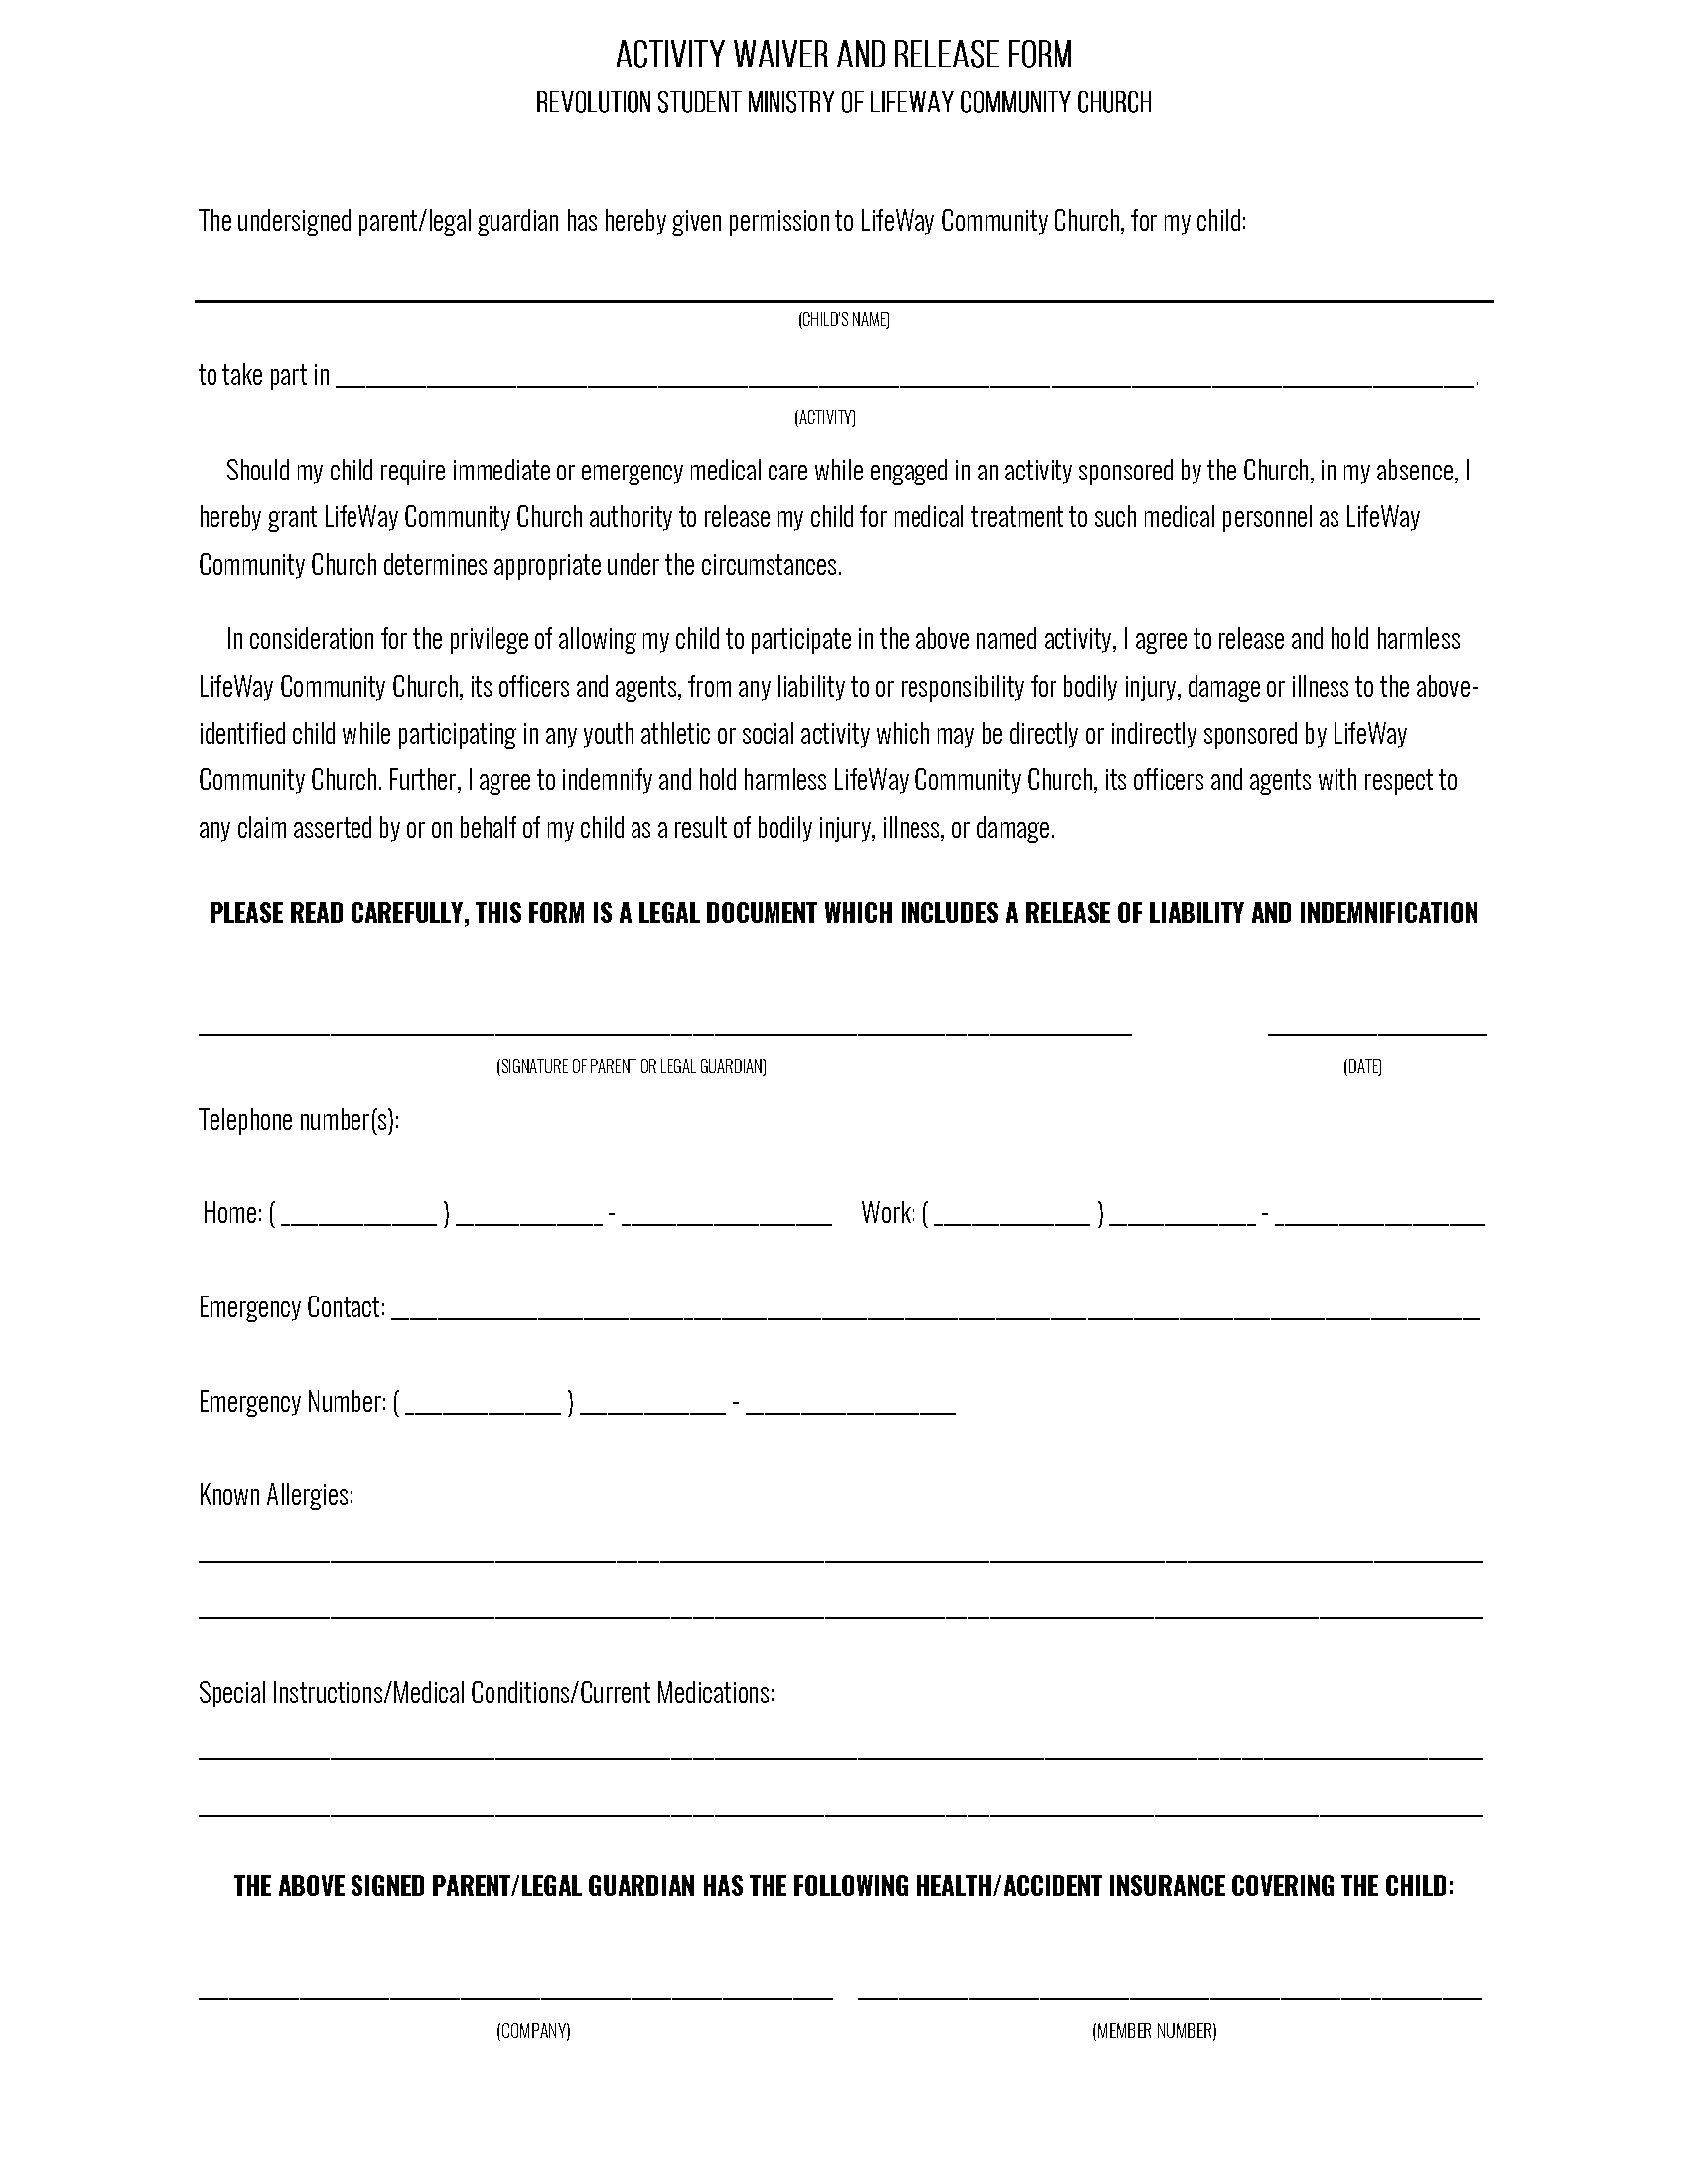 Activity Waiver and Release Form.png